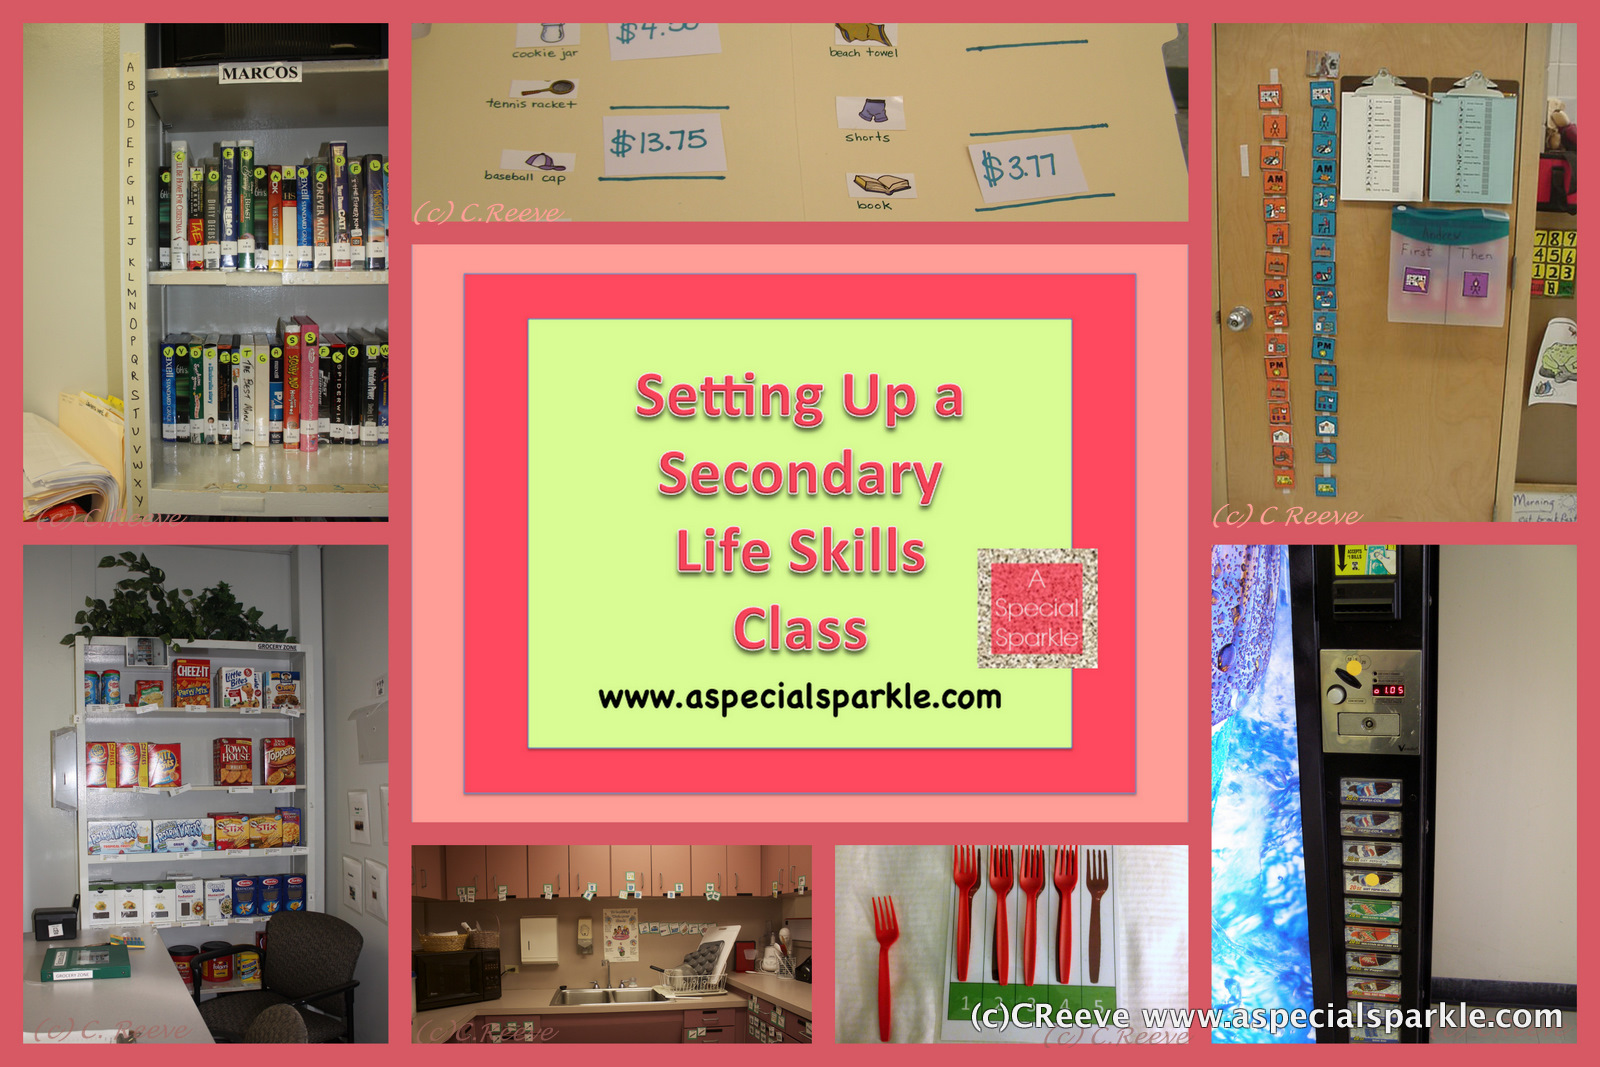 Workbooks transition worksheets for middle school : A Special Sparkle: Setting Up a Secondary Life Skills Class